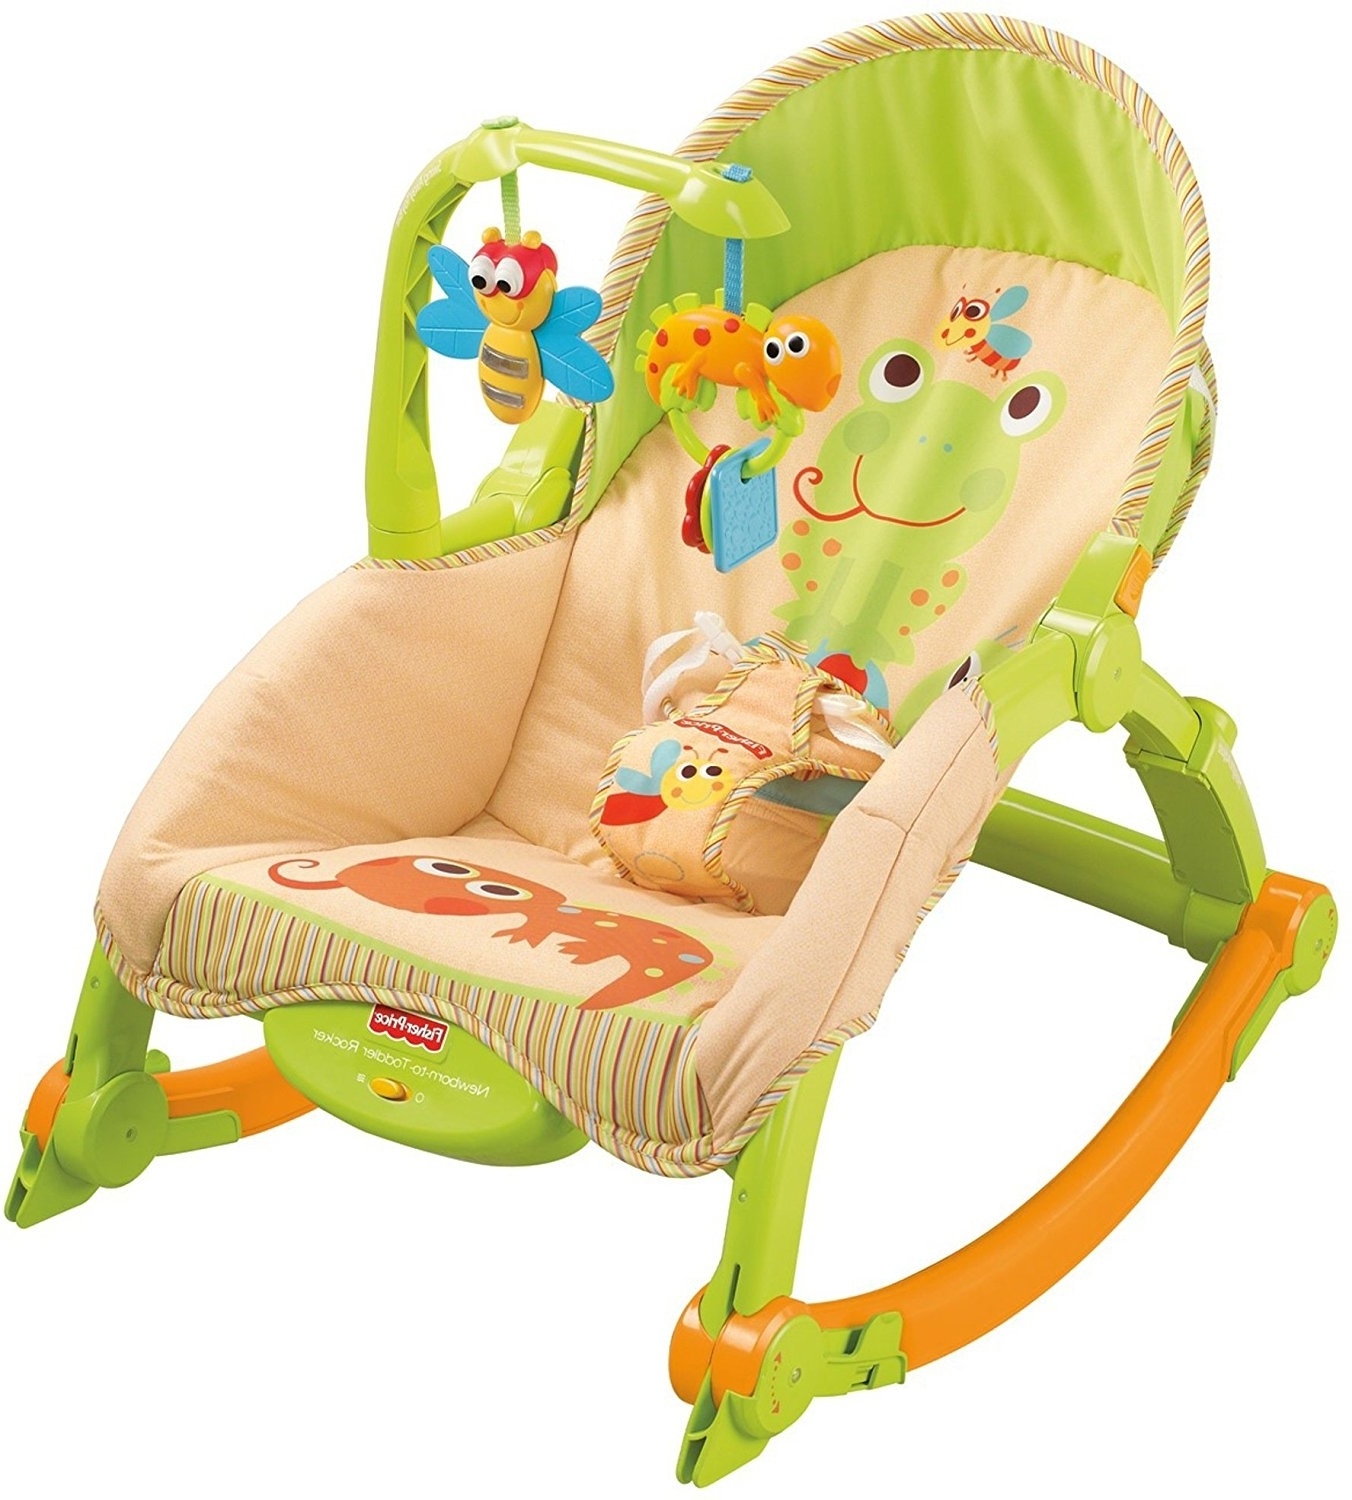 Favorite Rocking Chairs For Babies In Chair (View 5 of 15)